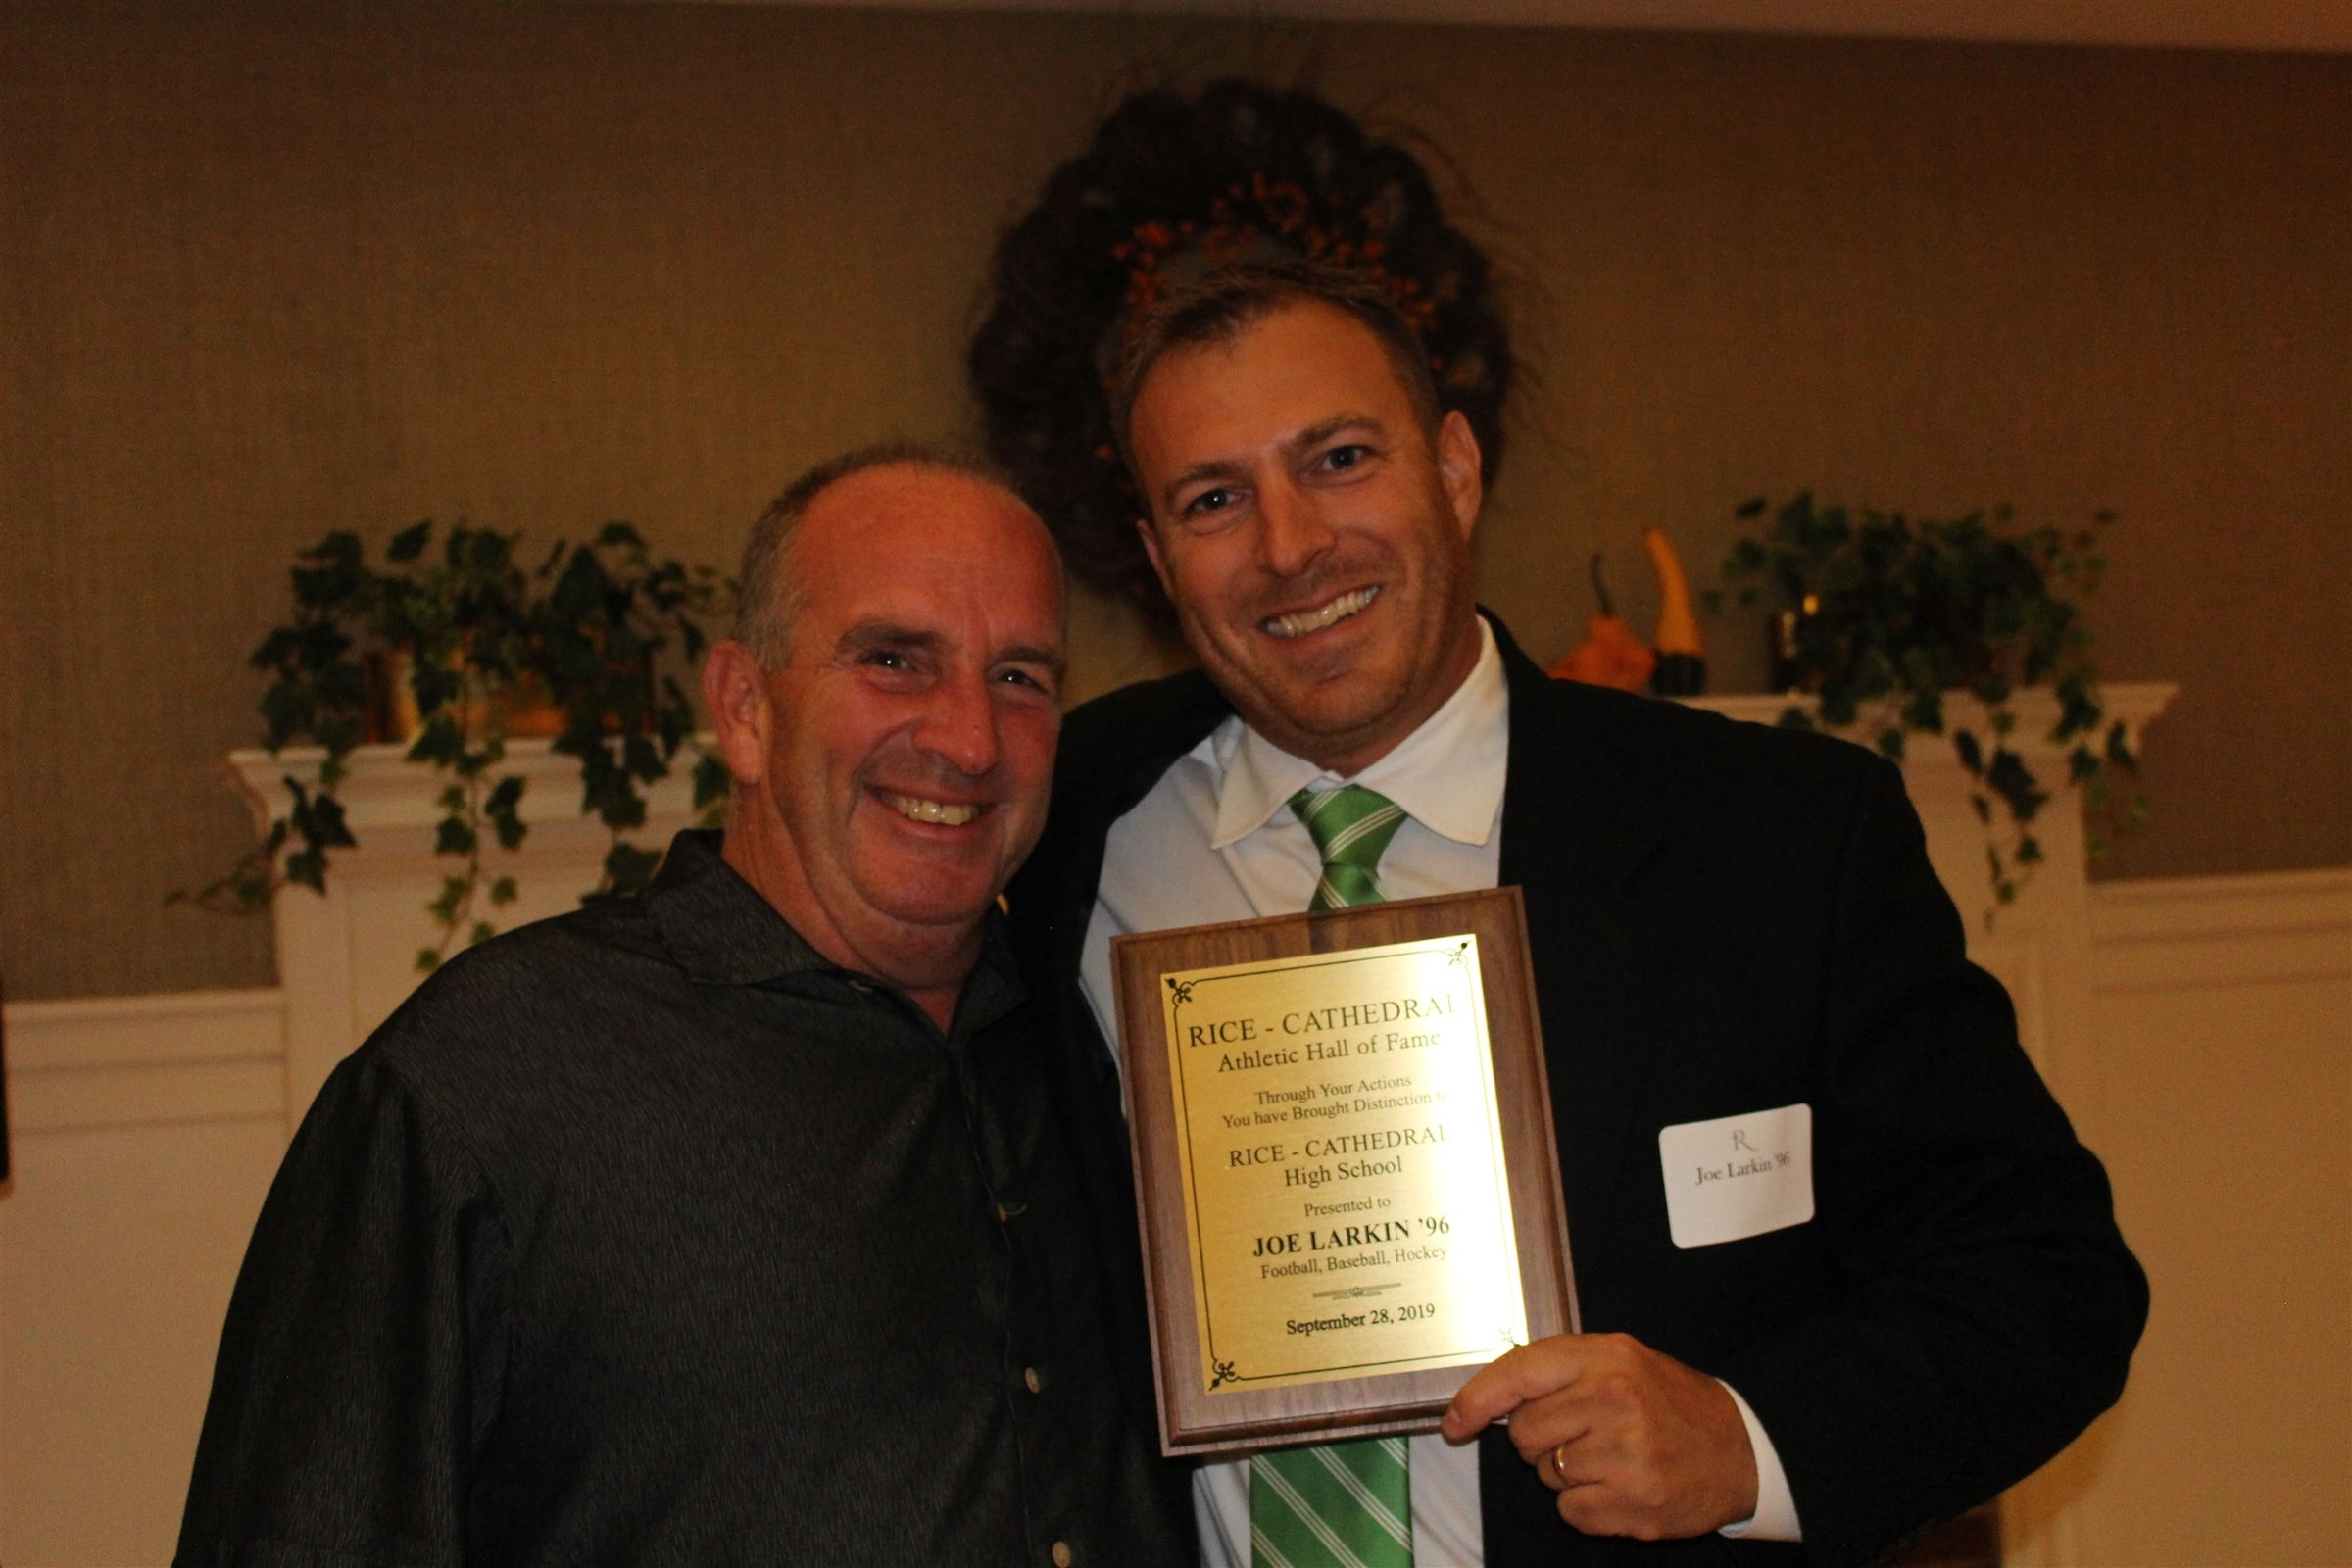 Inductee Joe Larkin '96 with former coach Gary Provost '81